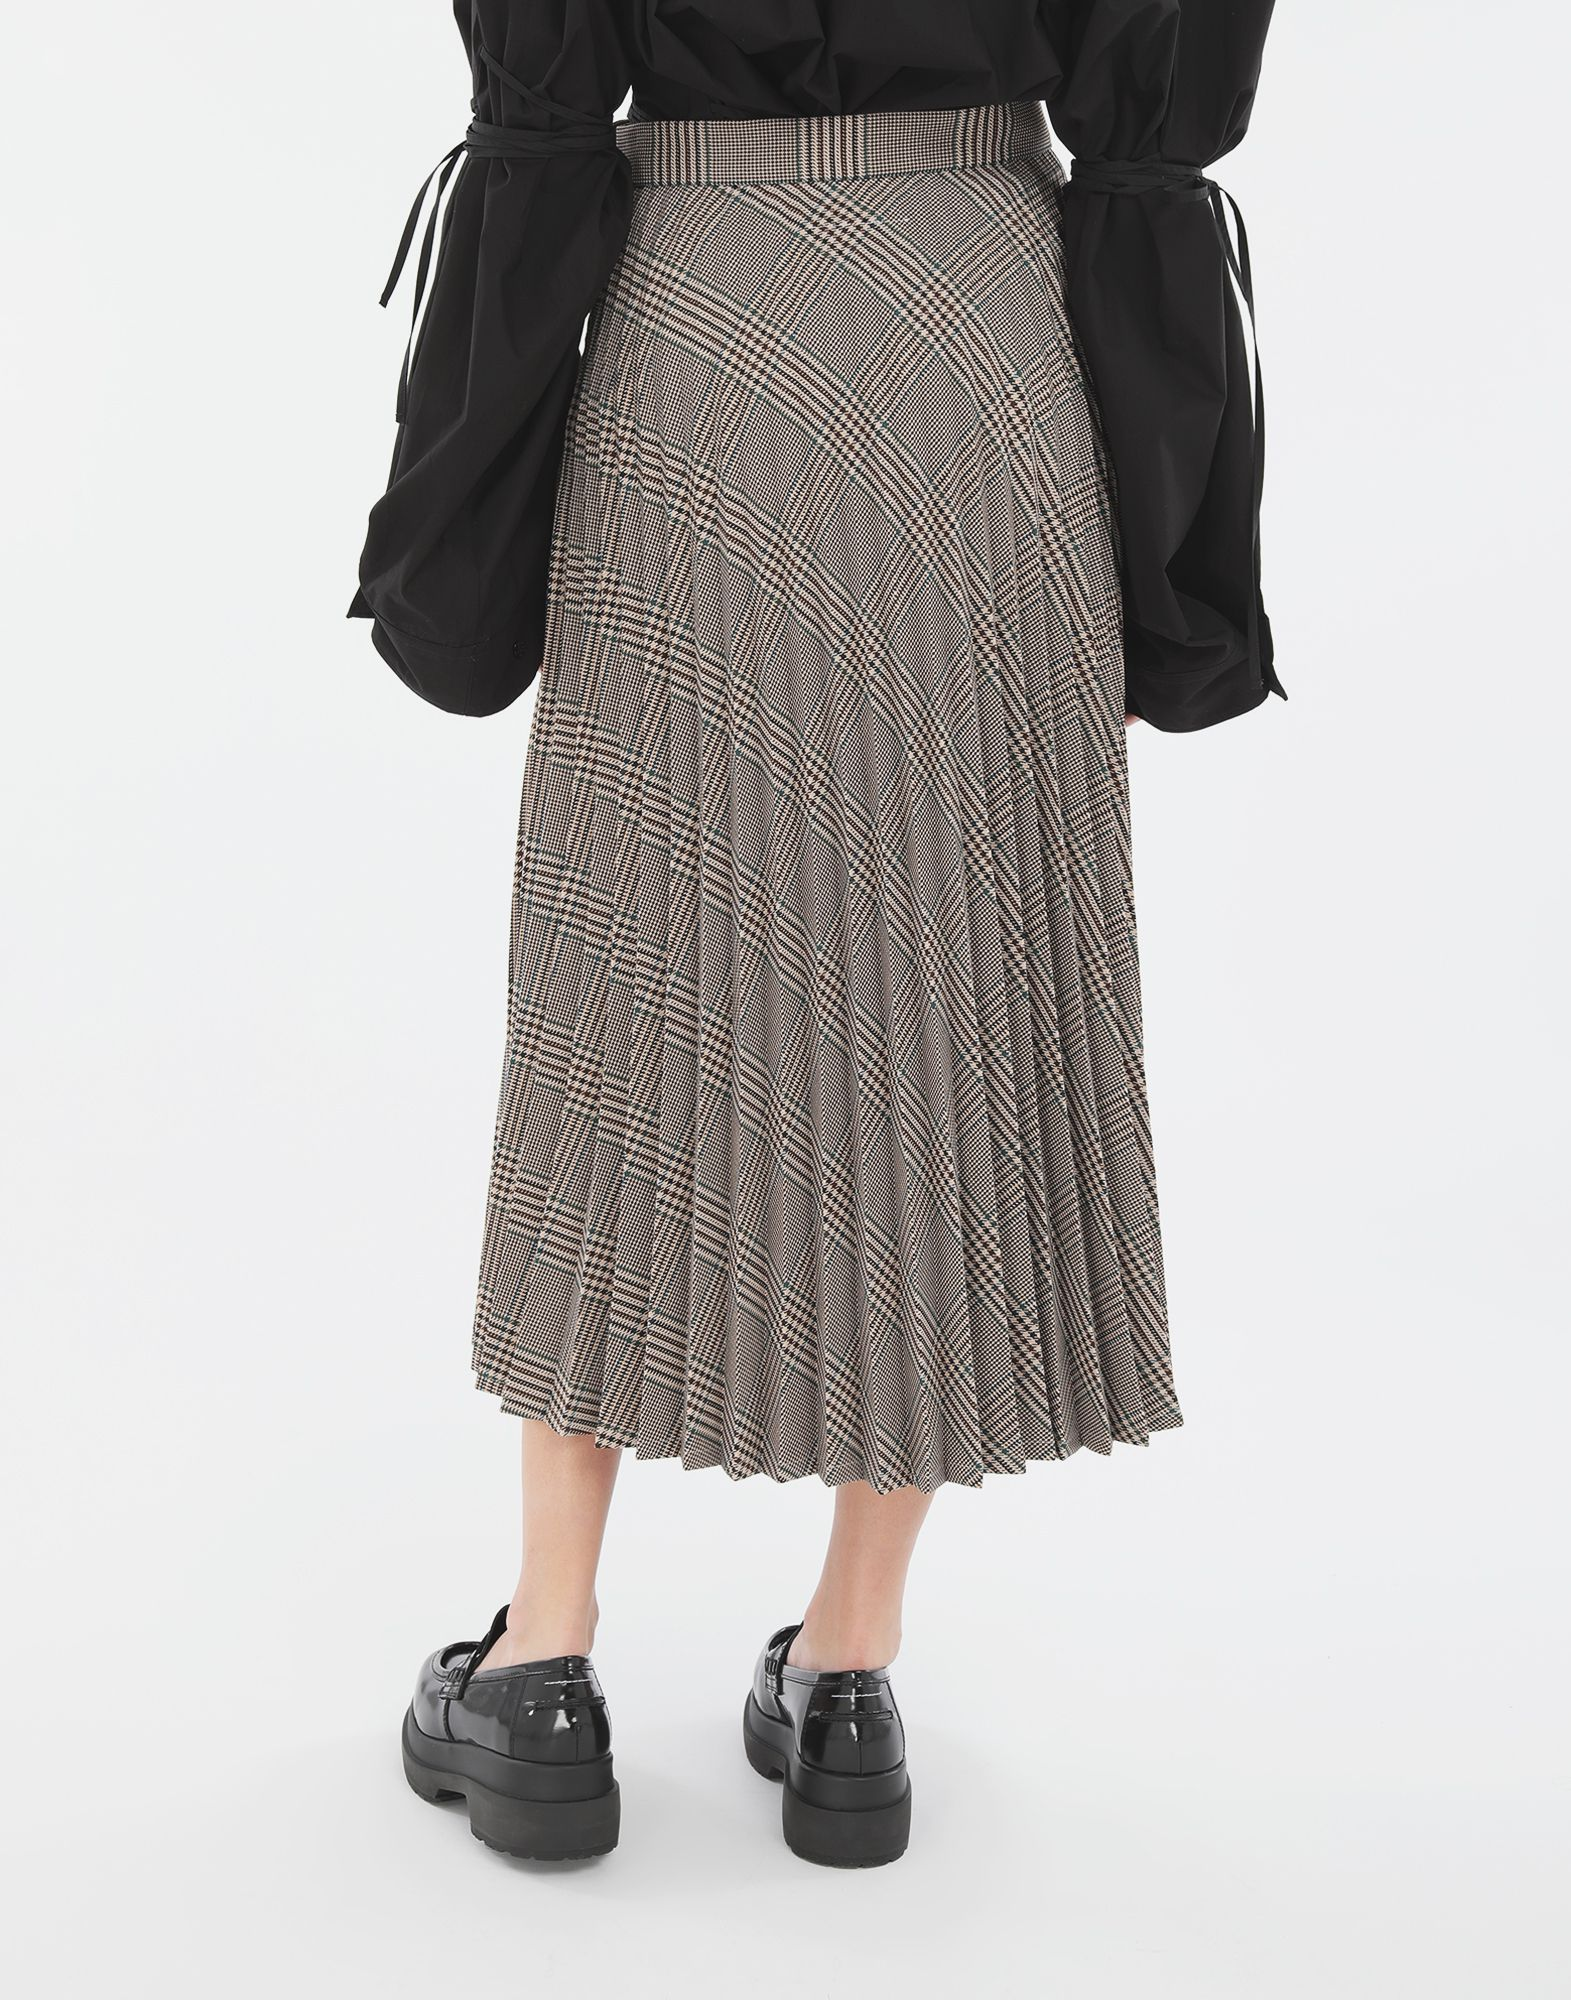 MM6 MAISON MARGIELA Checked pleated skirt 3/4 length skirt Woman e